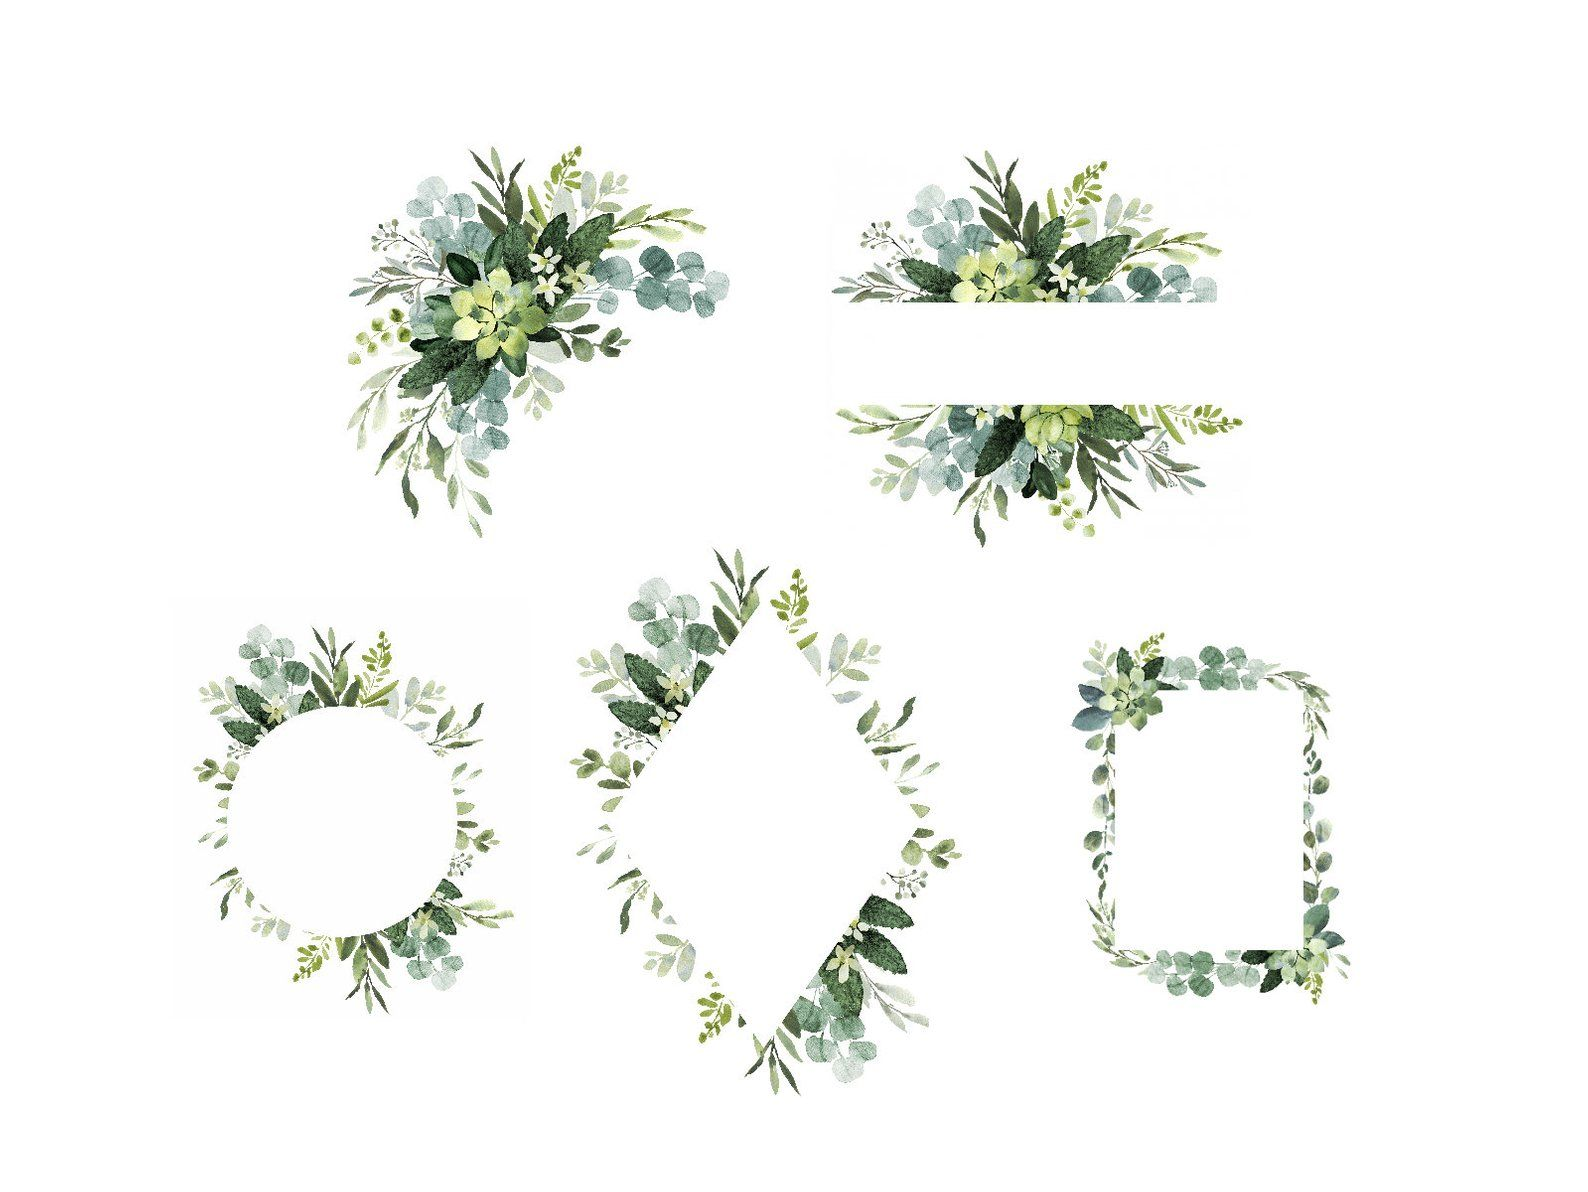 Foliage watercolor clipart with modern greenery, Eucalyptus.